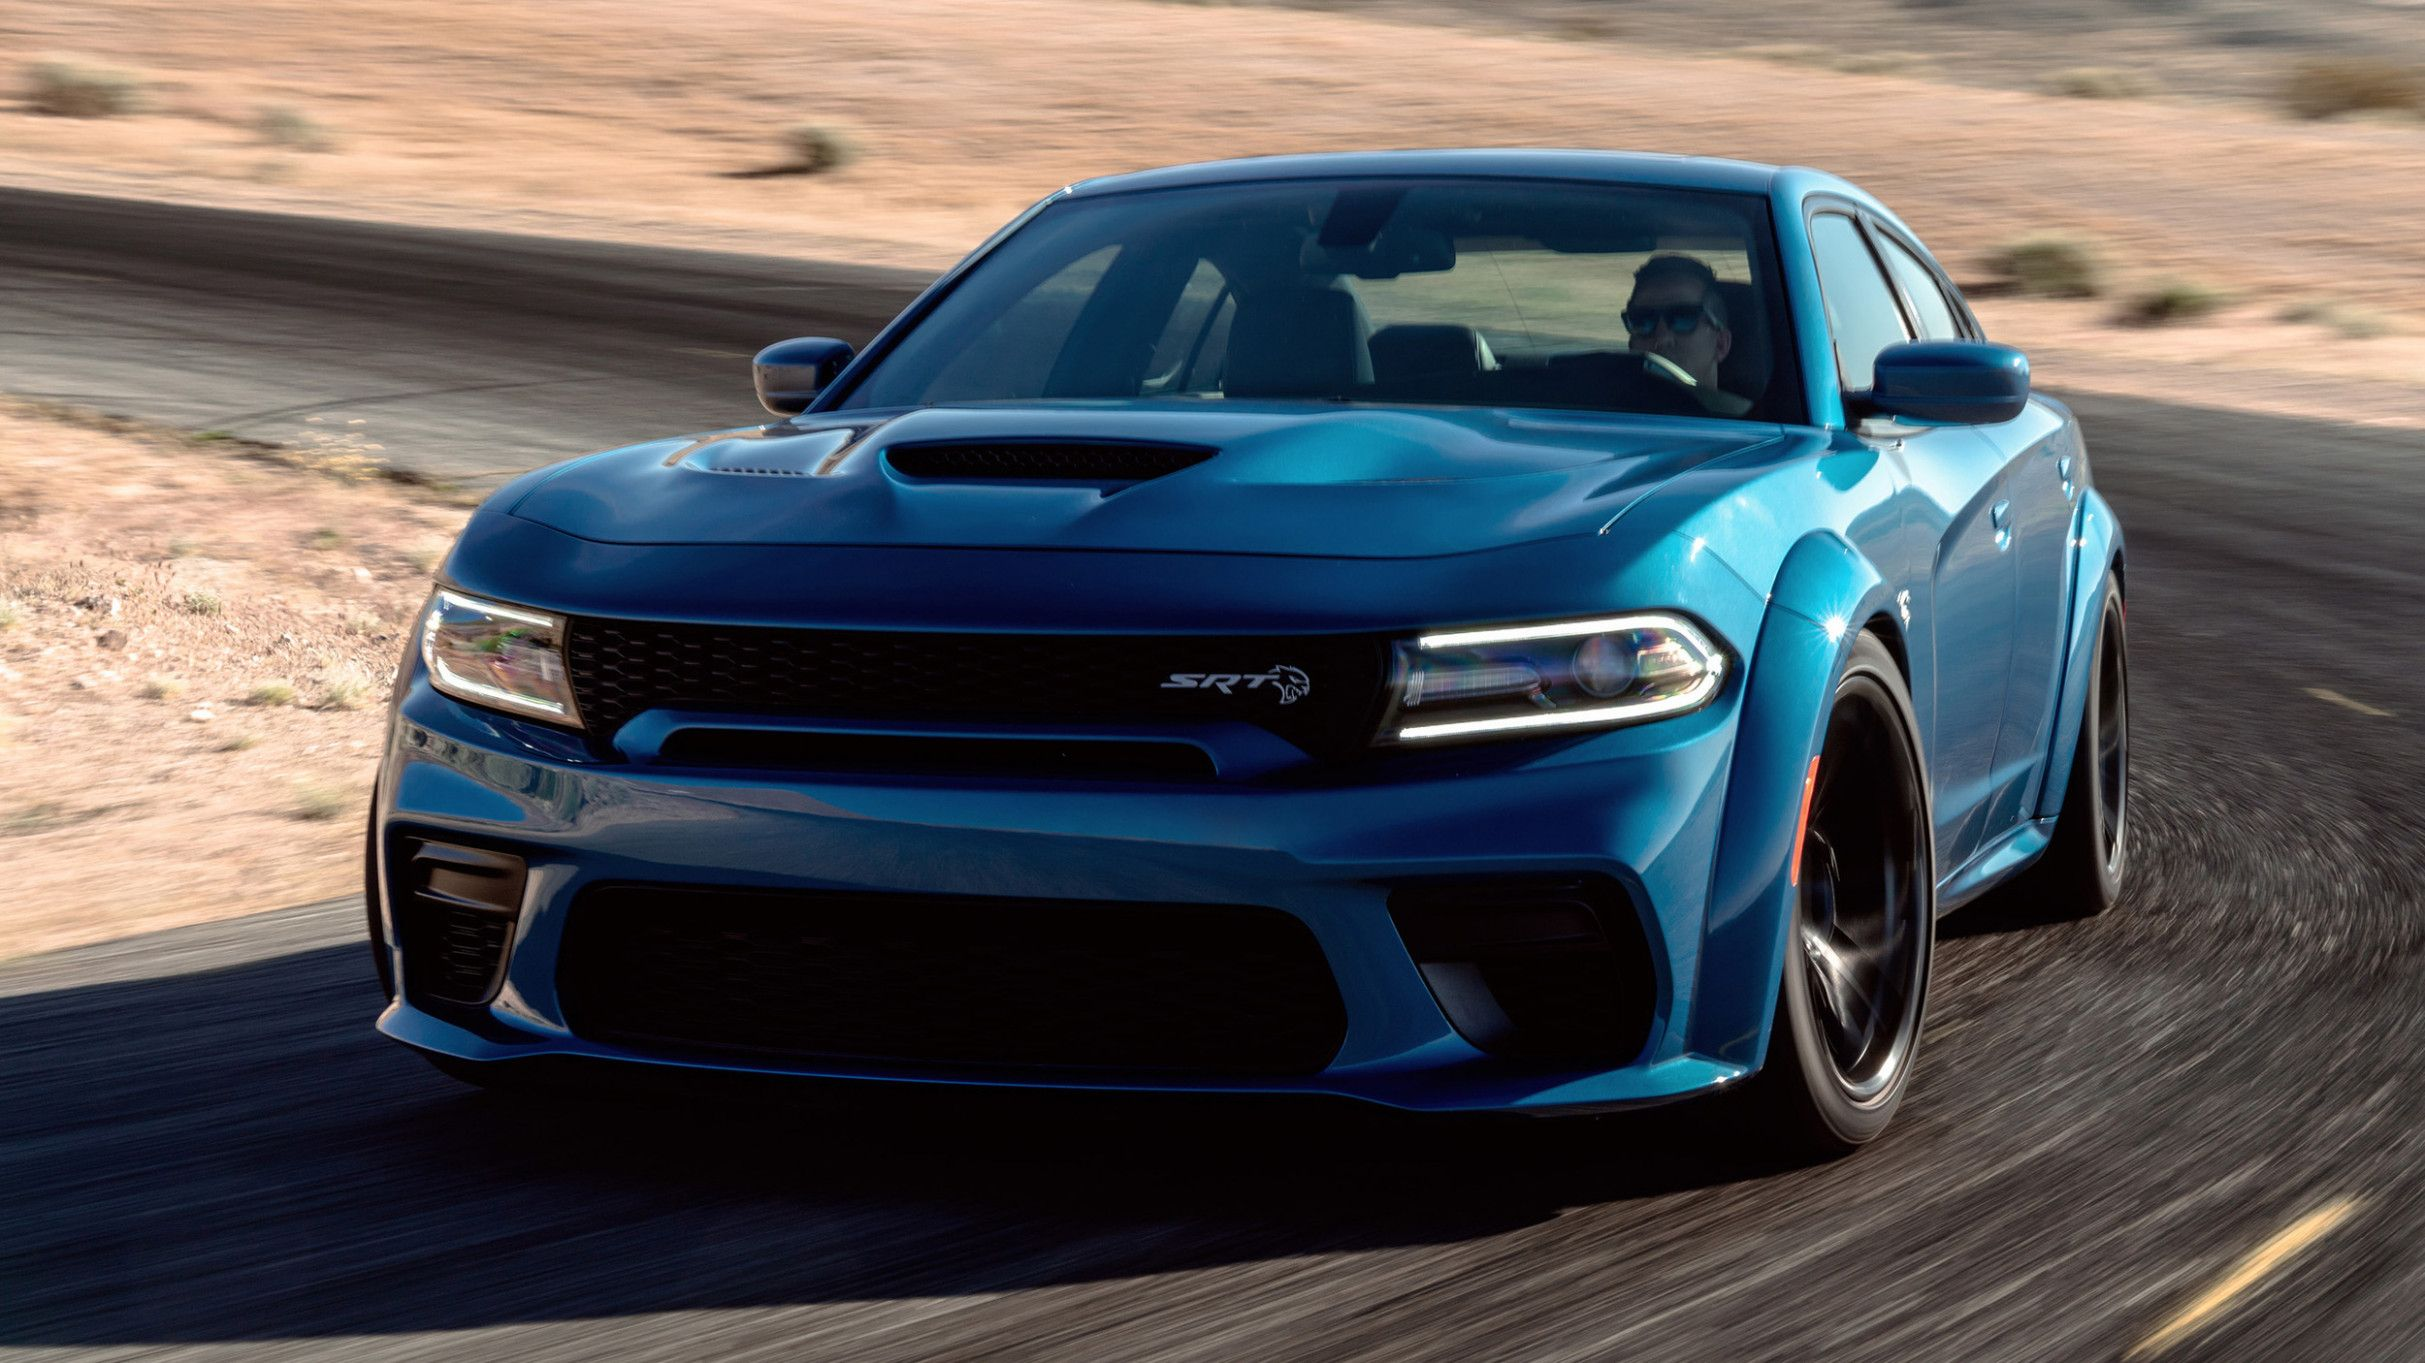 8 Image Dodge Charger Hellcat 2020 In 2020 Dodge Charger Srt Dodge Charger Hellcat Charger Srt